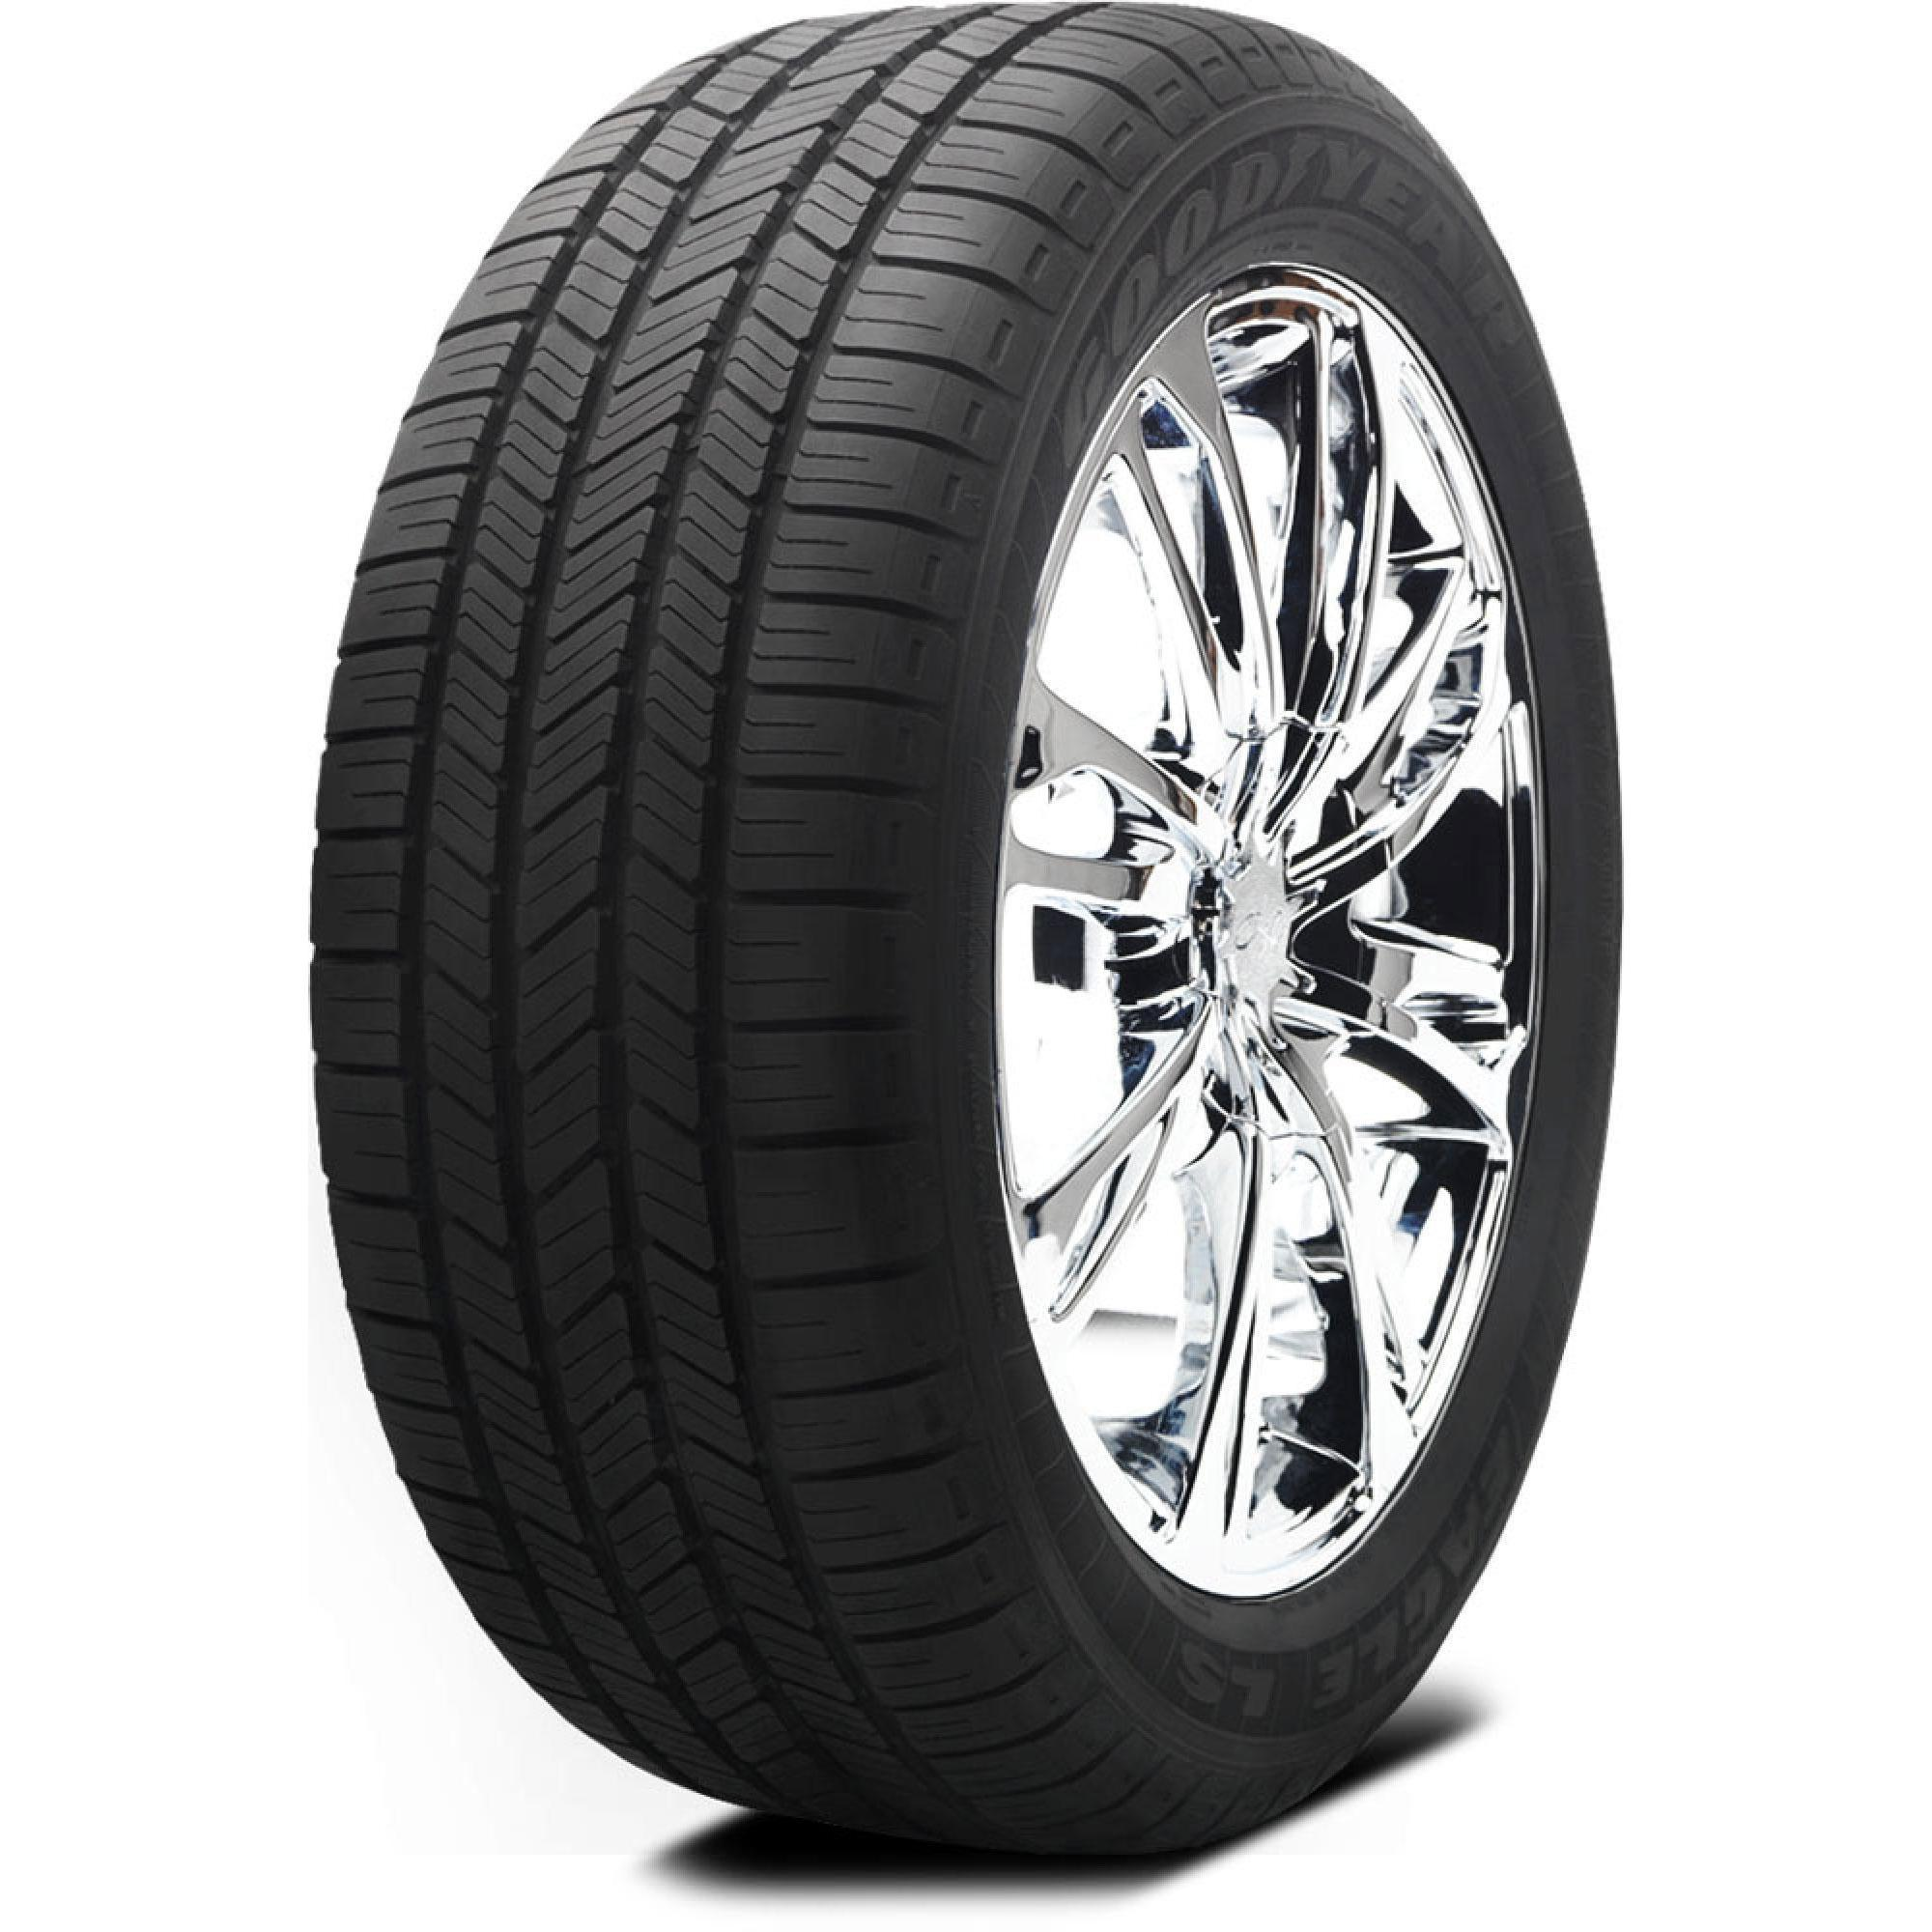 Goodyear Tires Eagle LS Passenger All Season Tire